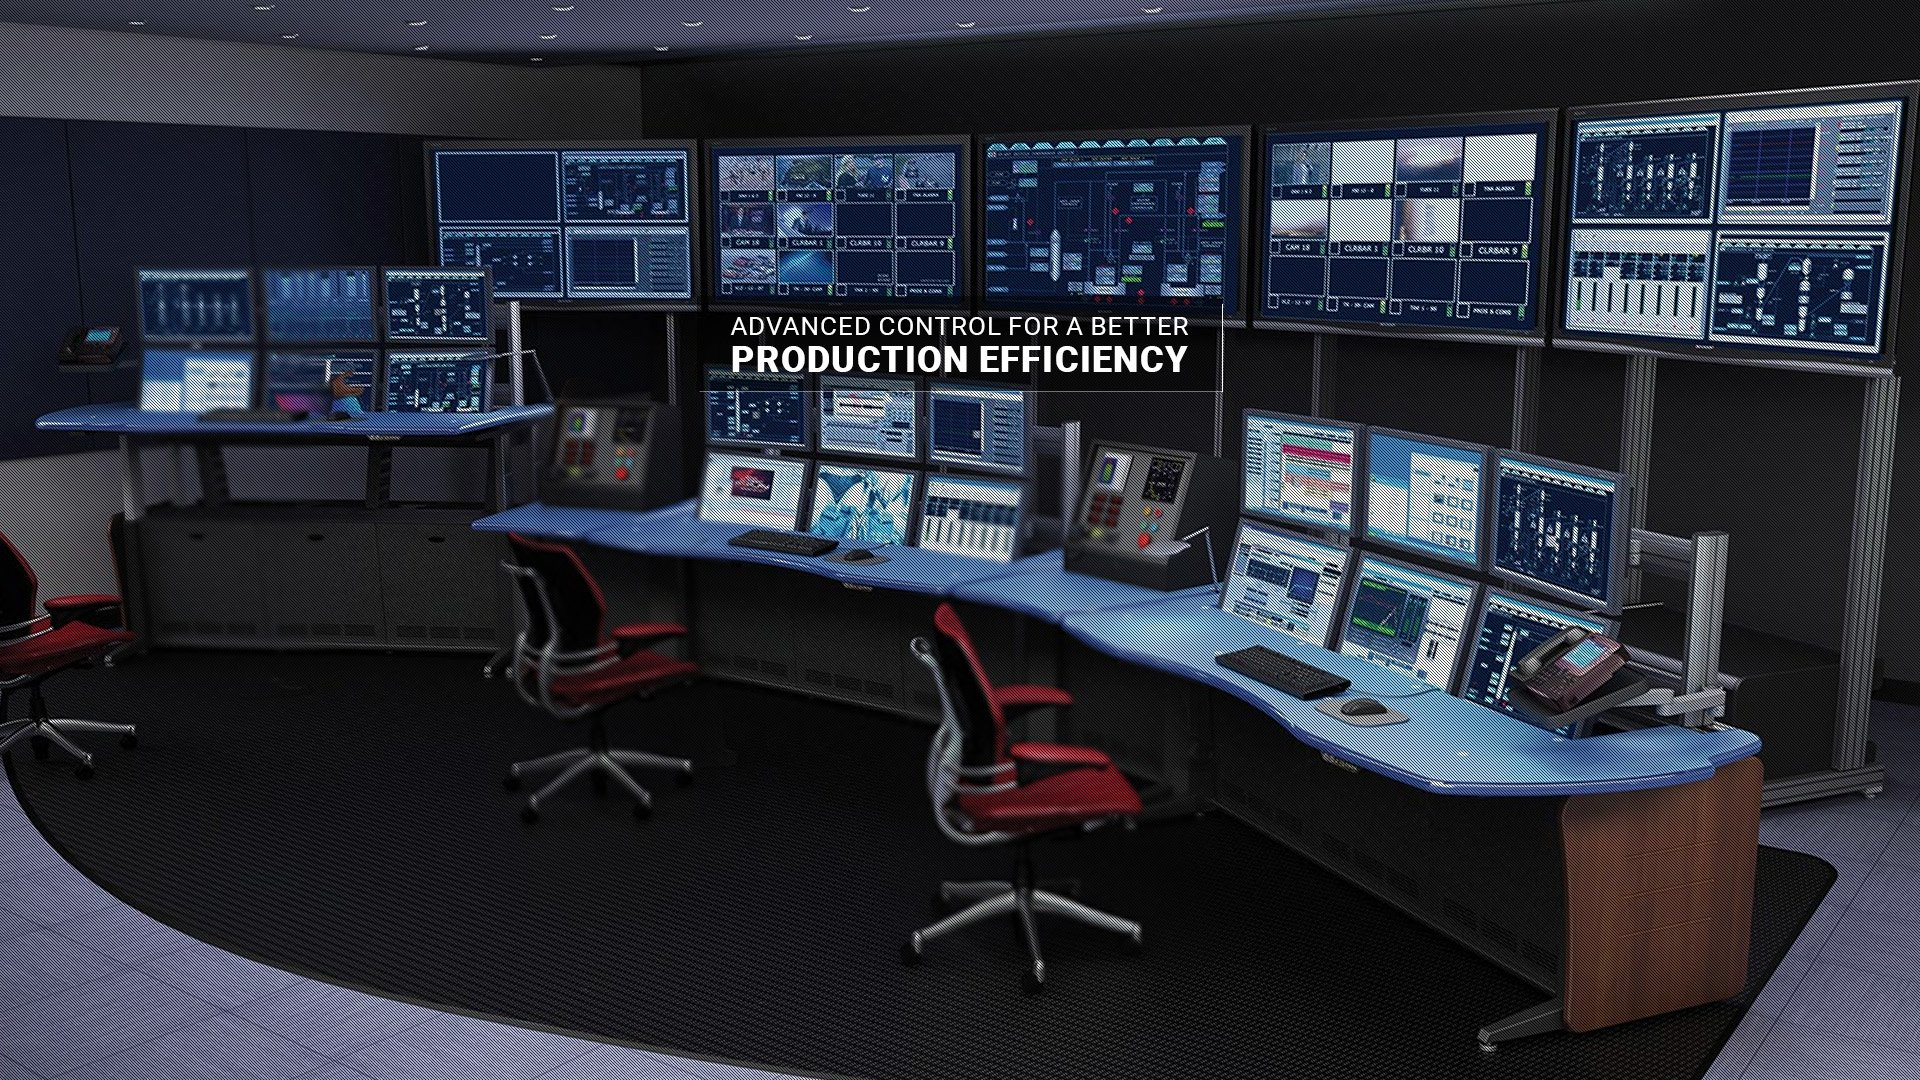 Advanced Control for a Better Production Efficiency